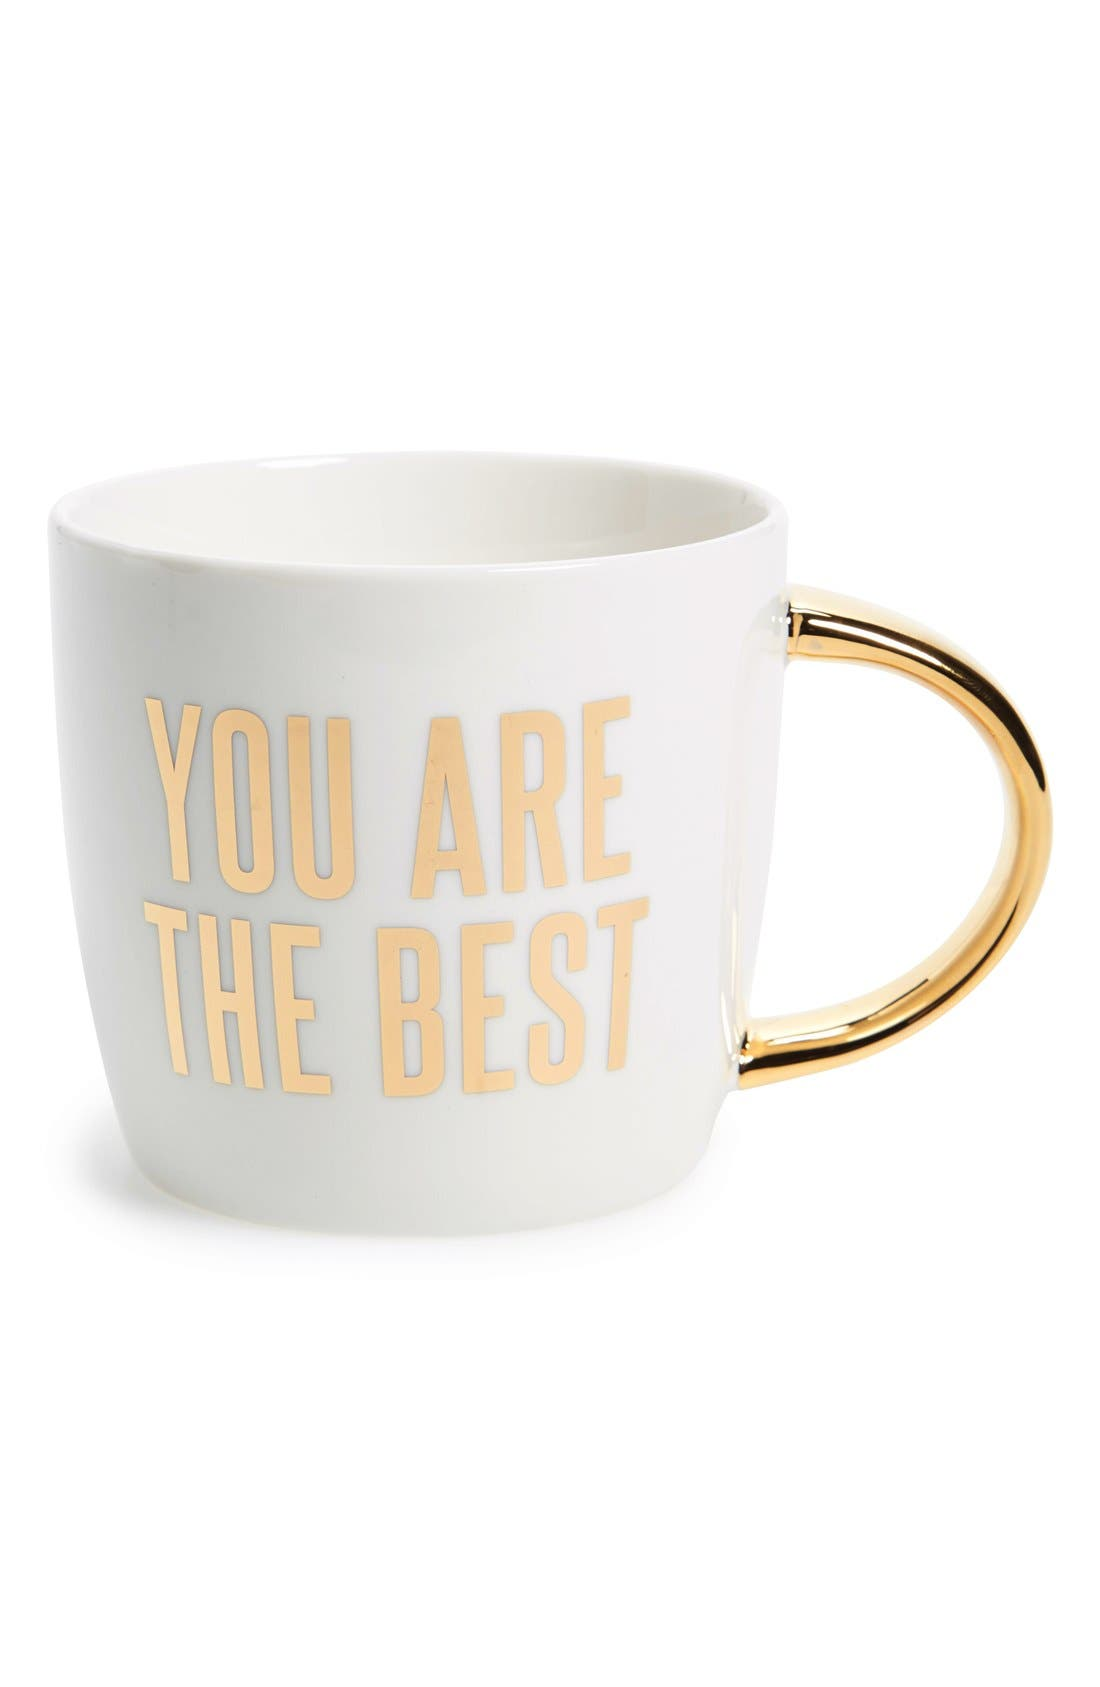 Alternate Image 1 Selected - Slant Collections 'You Are the Best' Ceramic Mug